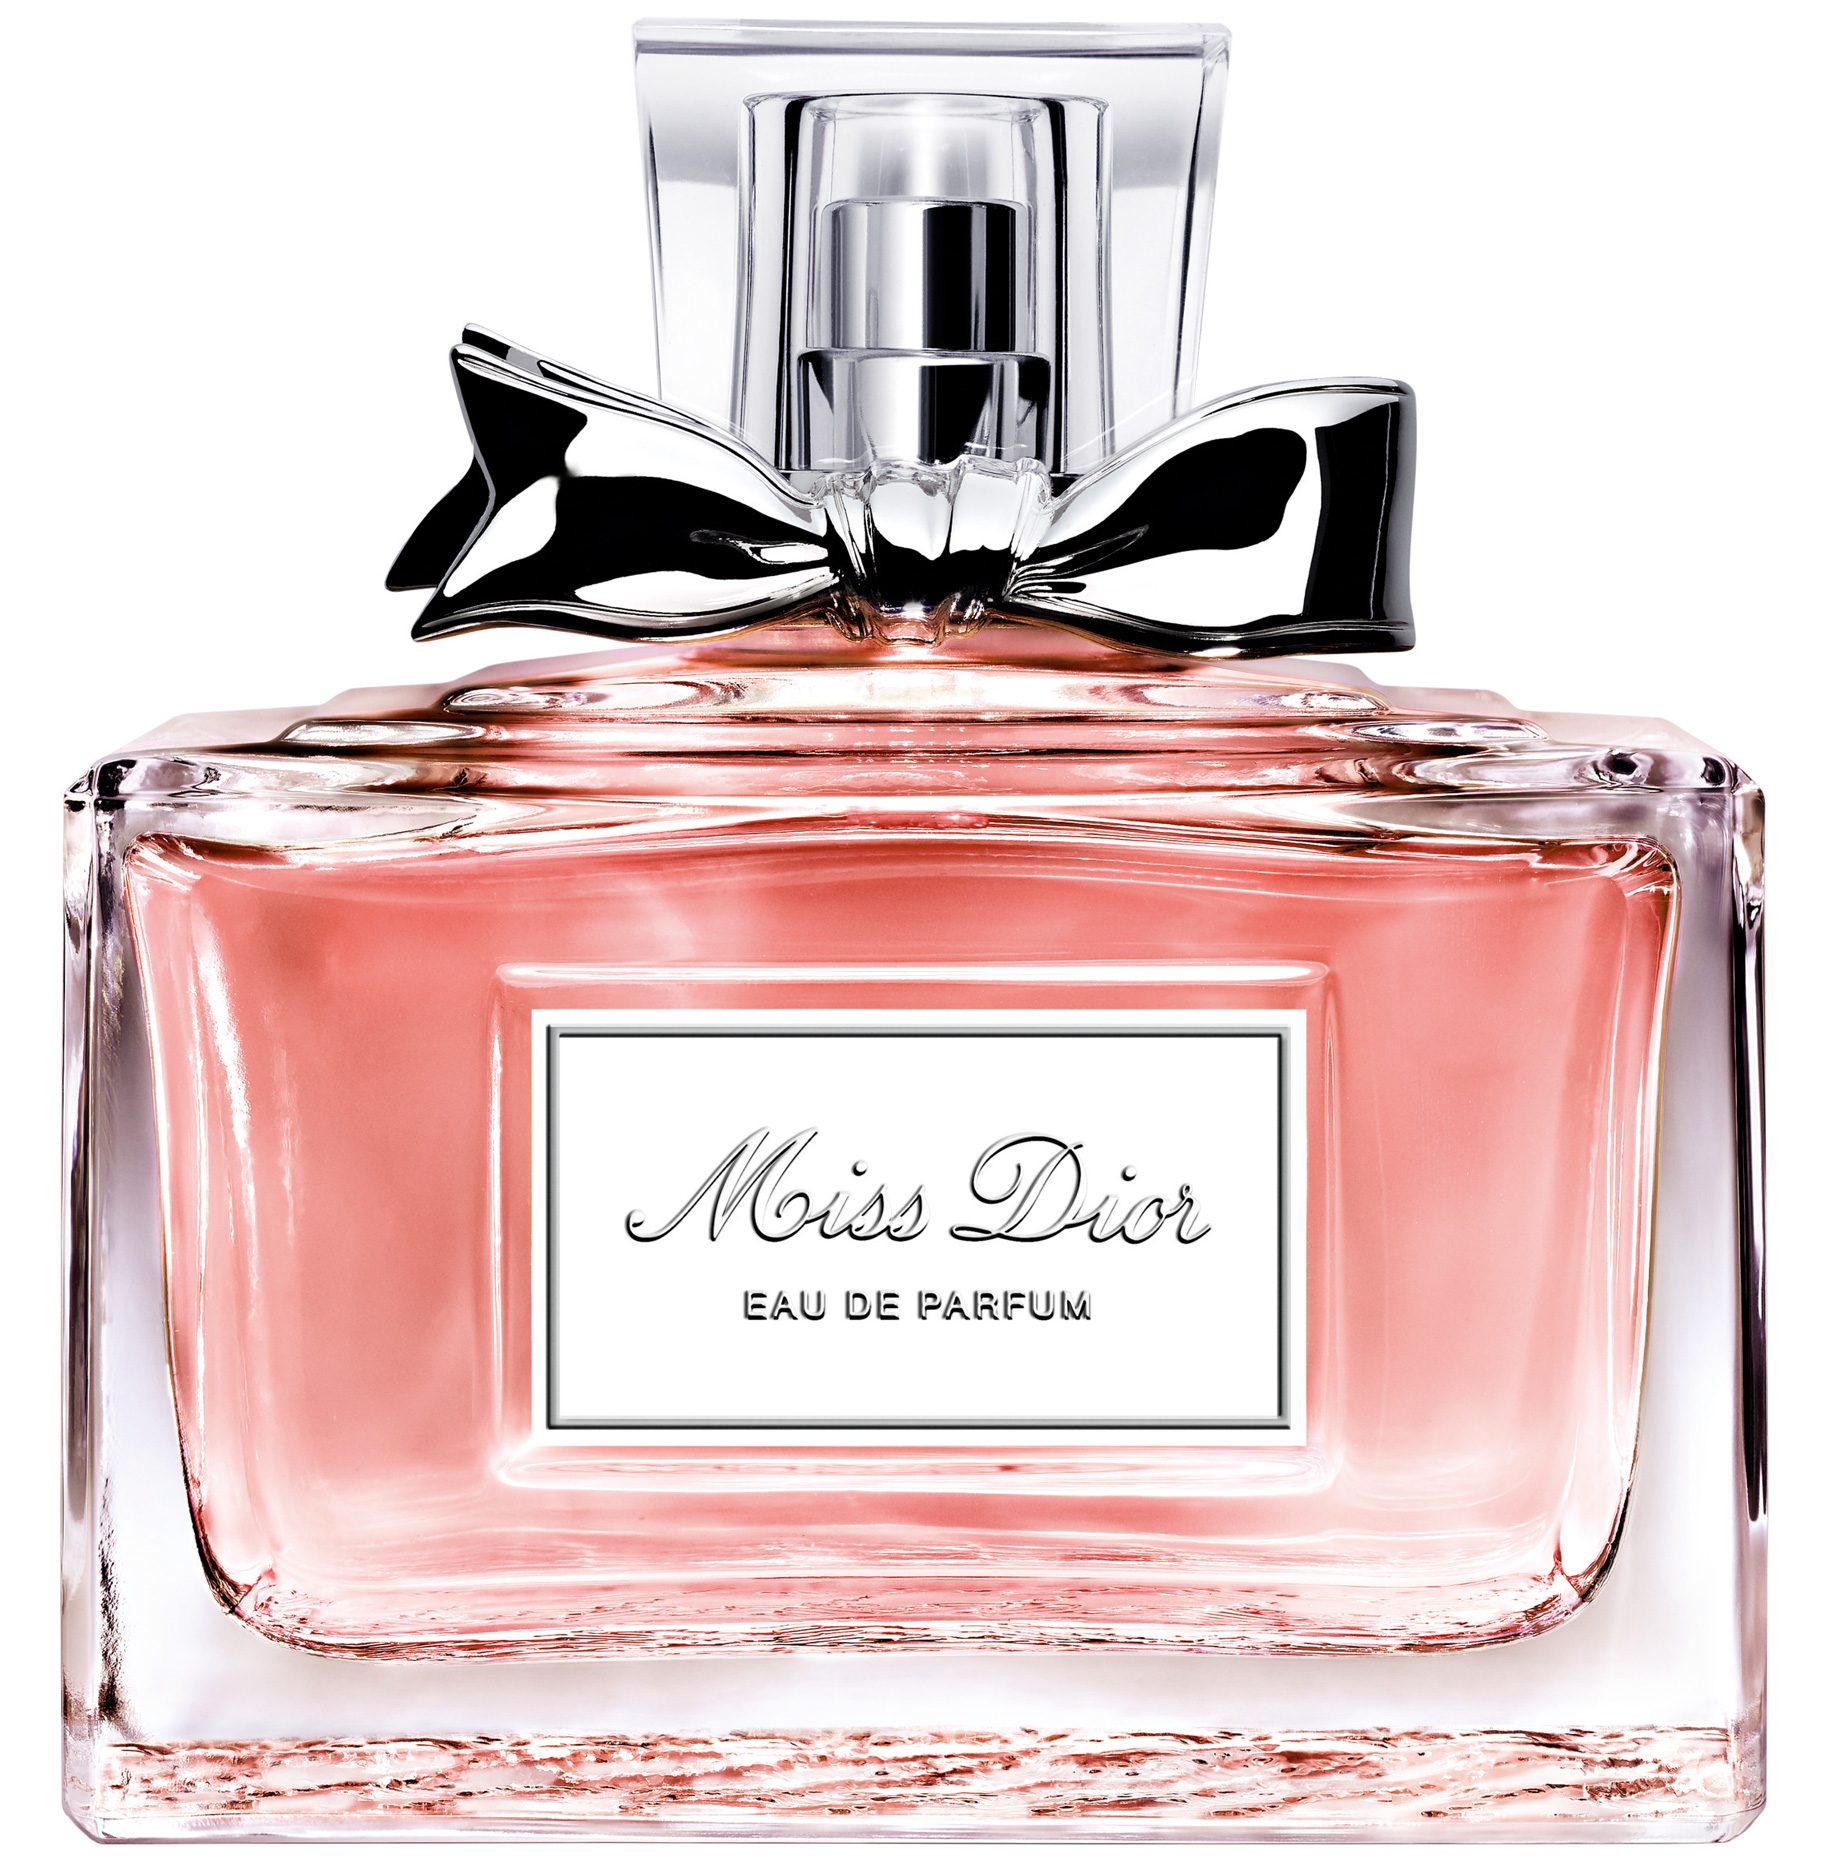 dior miss dior eau de perfume 100ml for woman kuwait. Black Bedroom Furniture Sets. Home Design Ideas